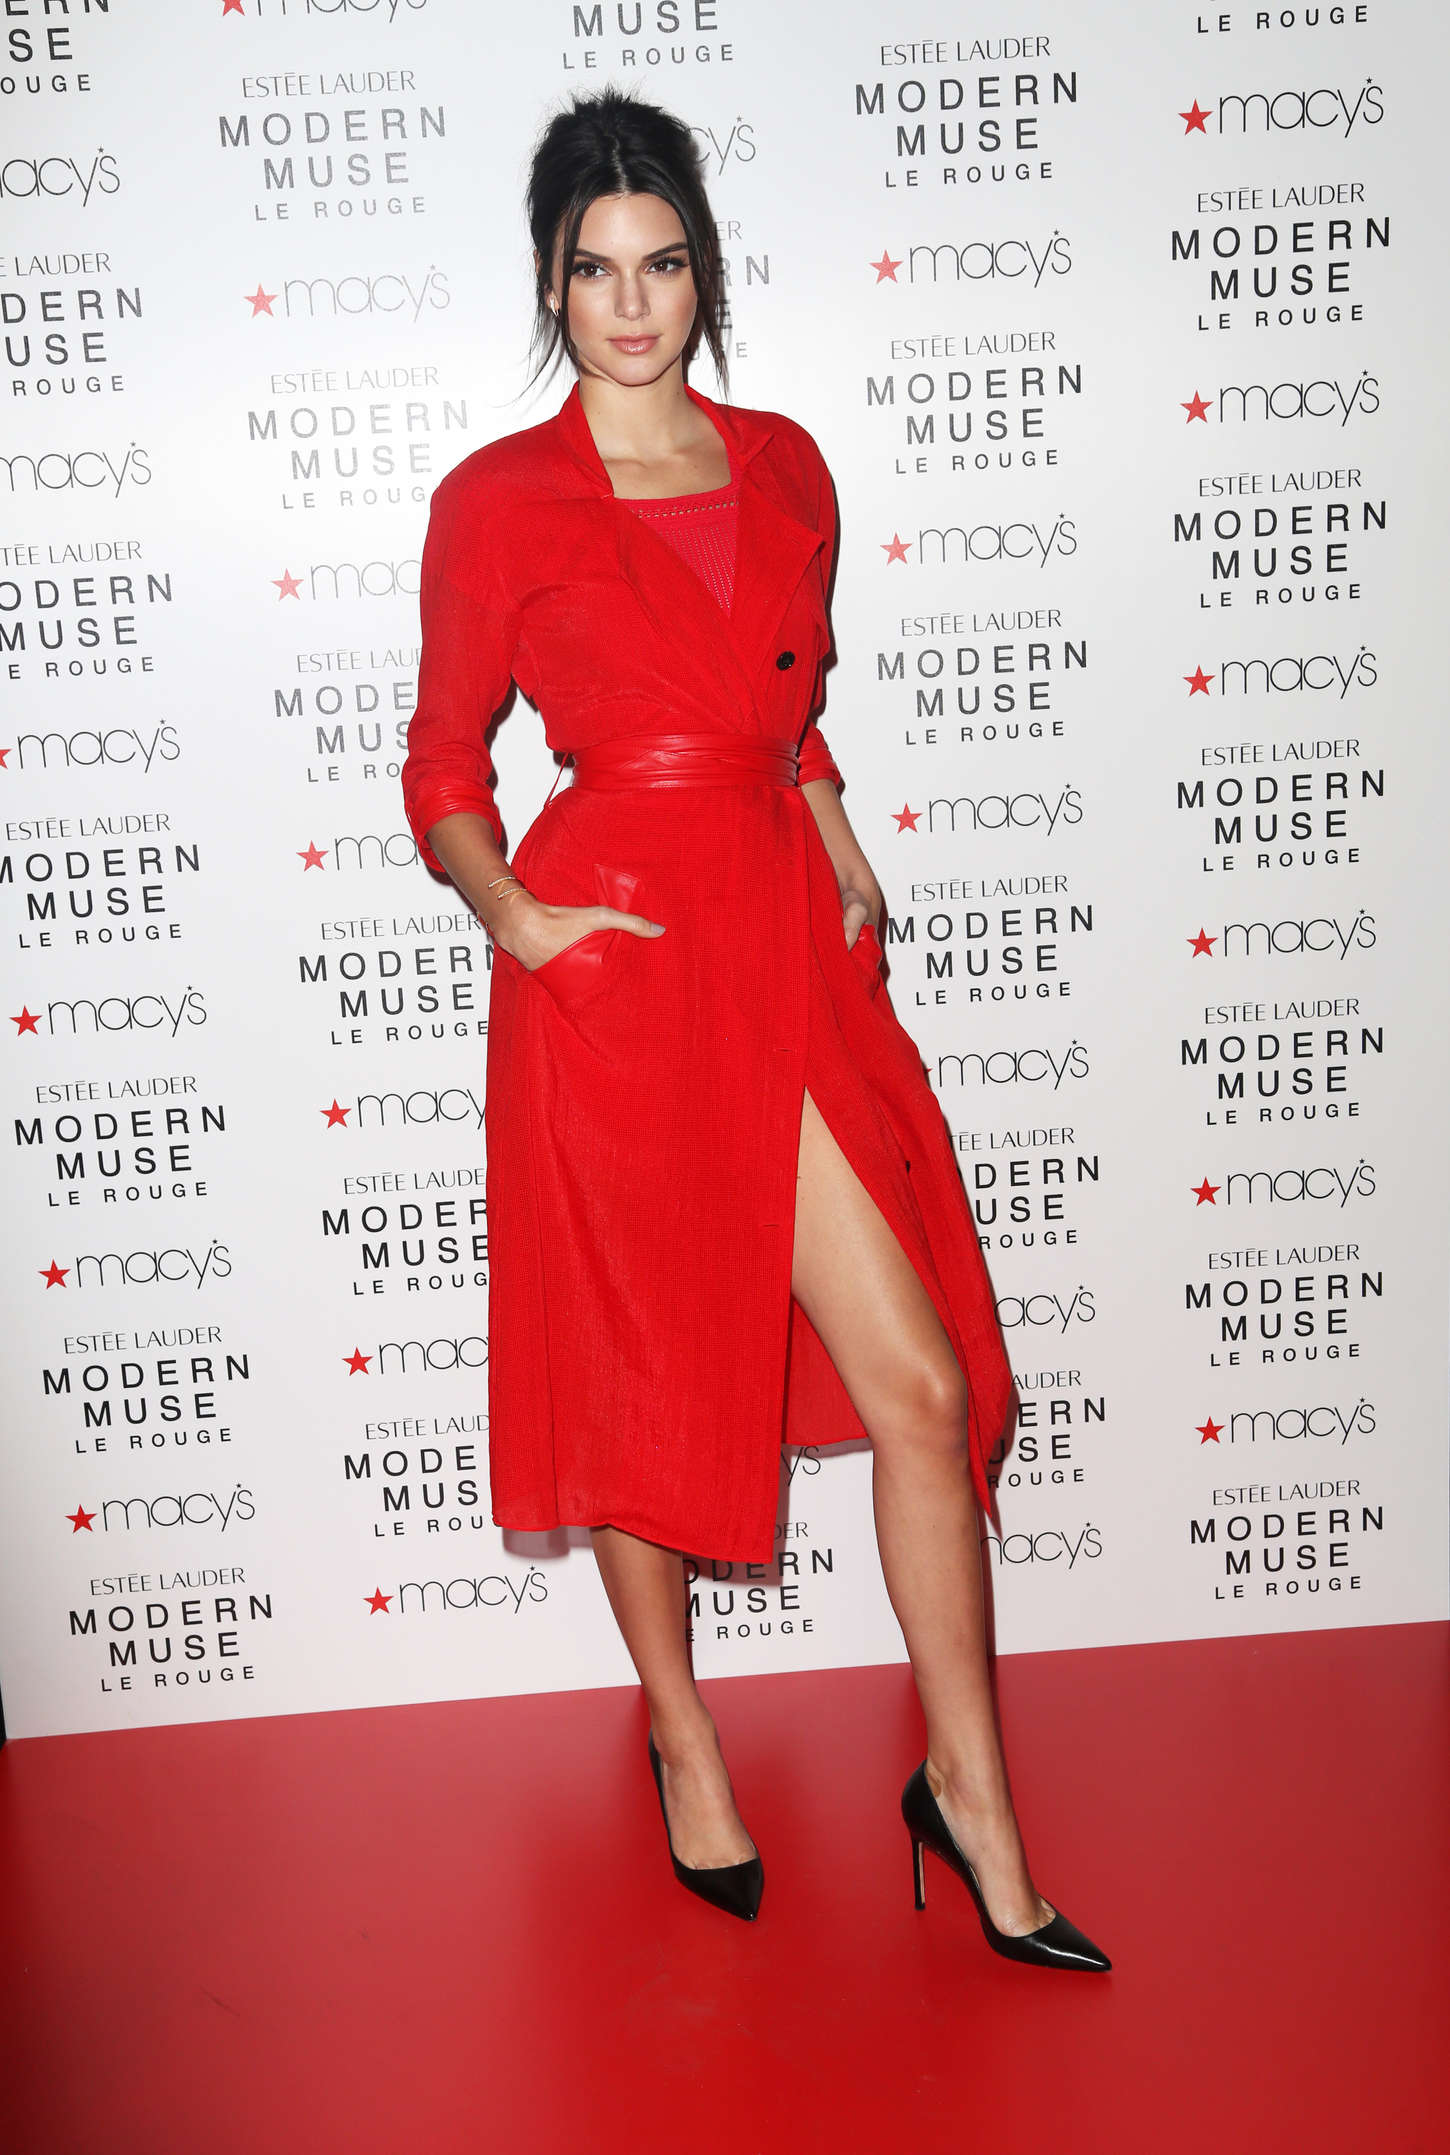 Kendall Jenner - Modern Muse Le Rouge New Fragrance in NYC